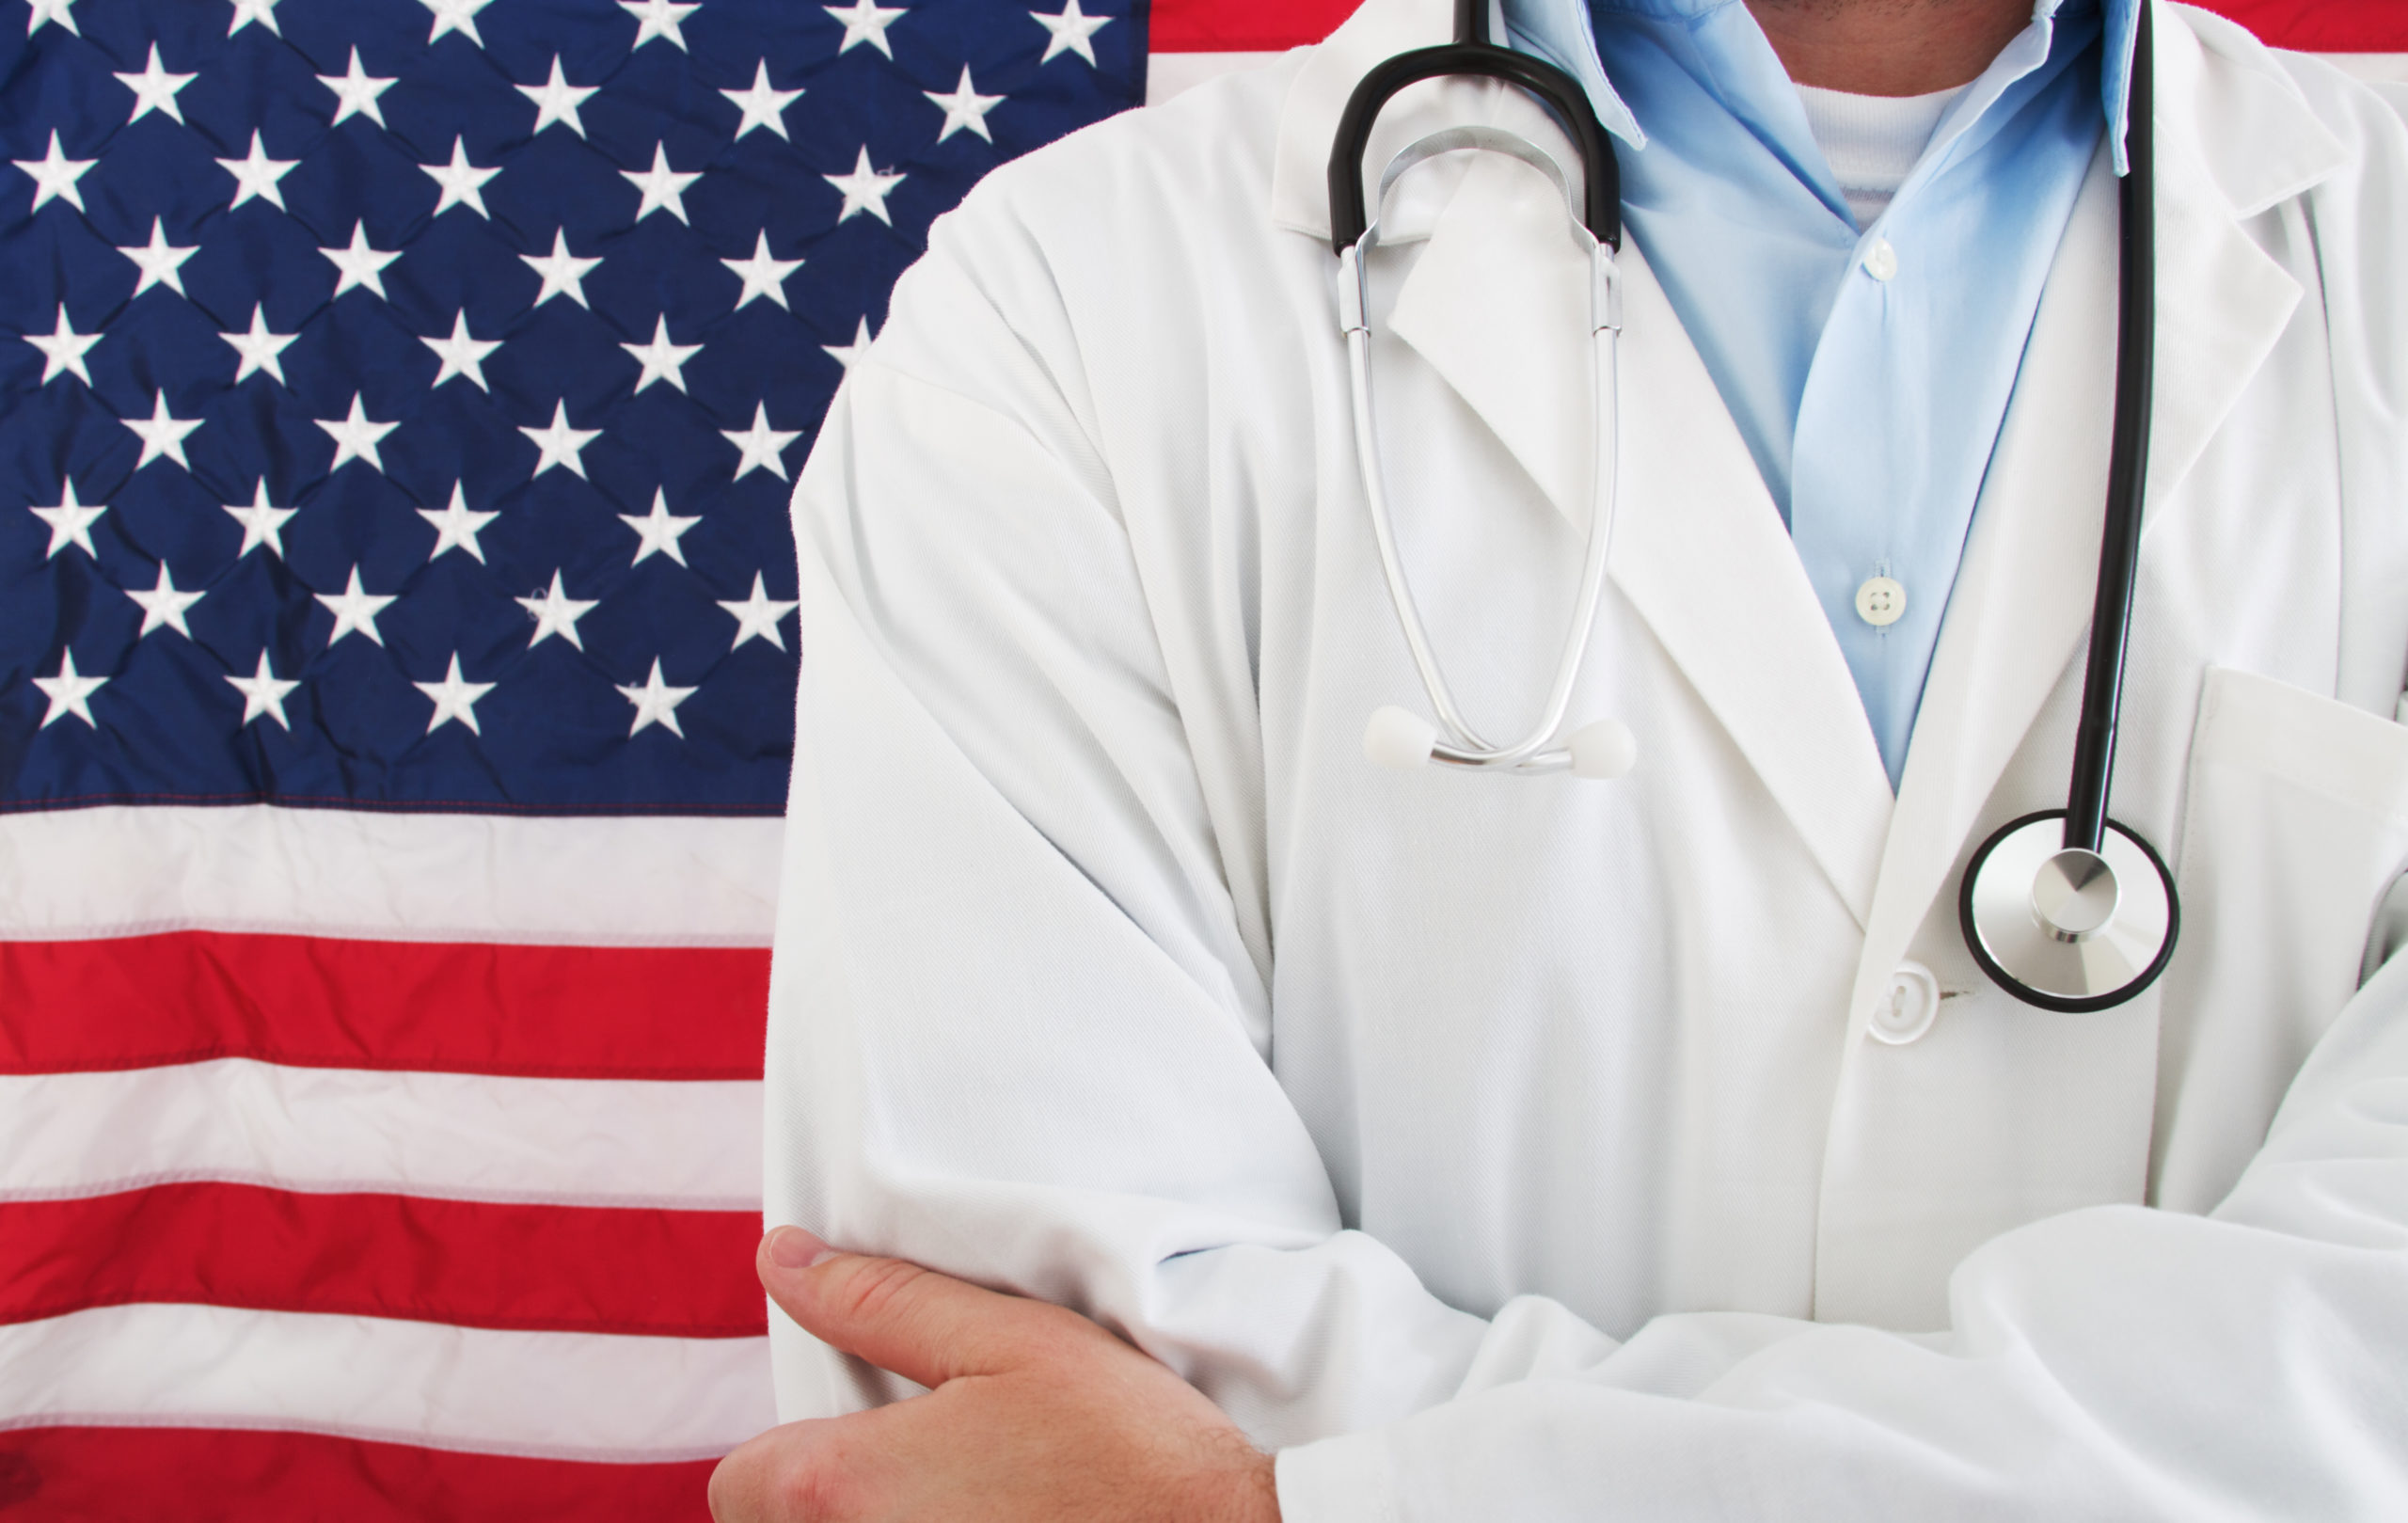 Preparing for What's Next in U.S. Health Reform